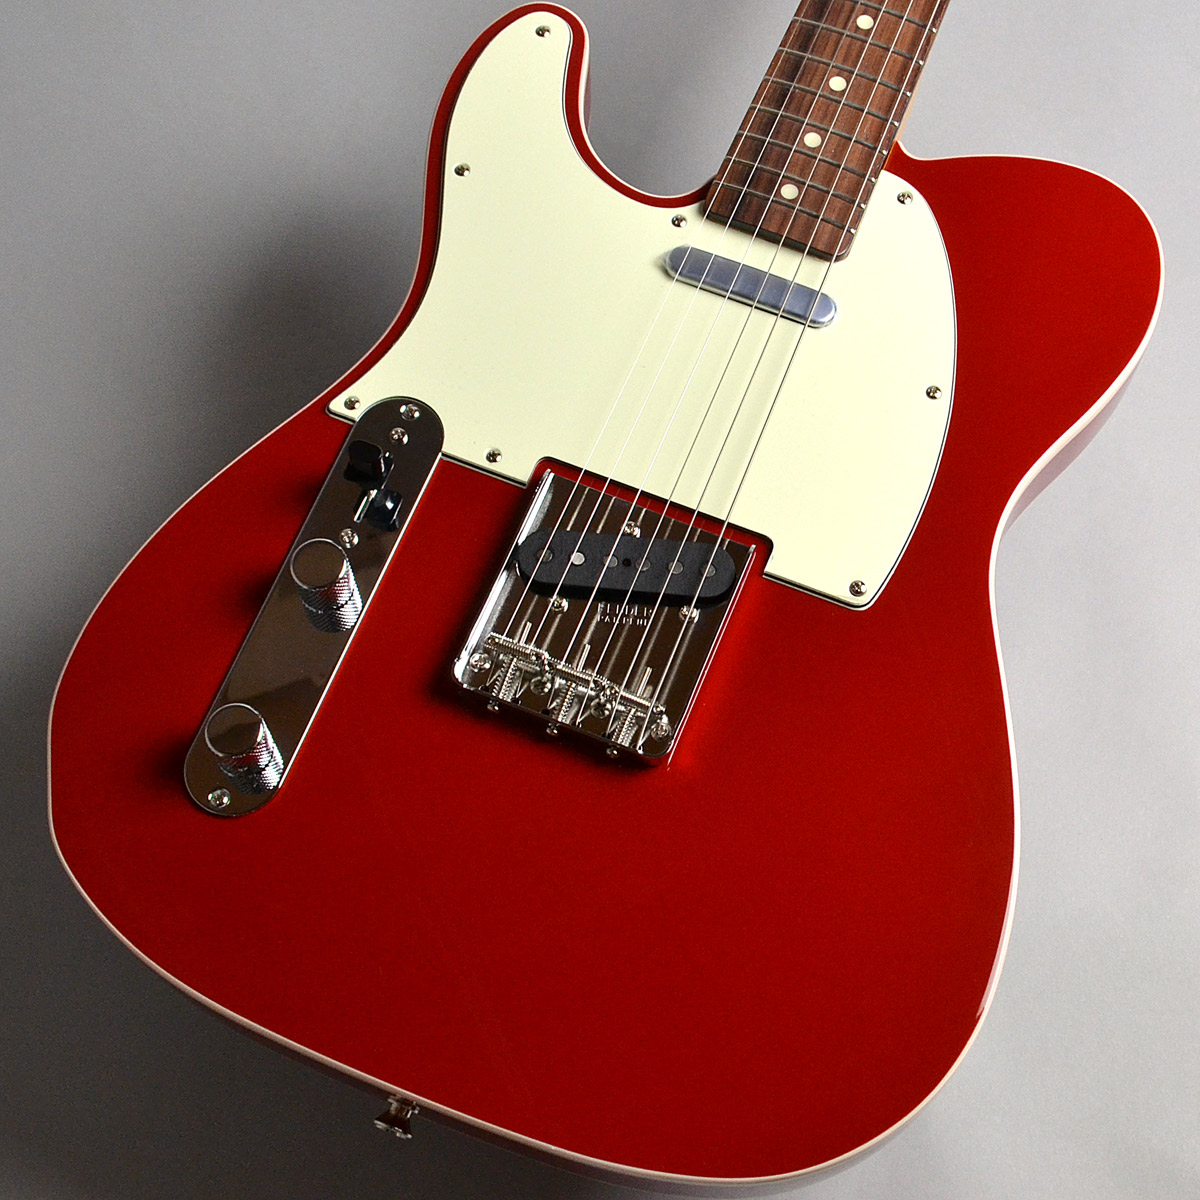 Made in JAPAN Traditional 60s Telecaster Custom Left-Handのボディトップ-アップ画像